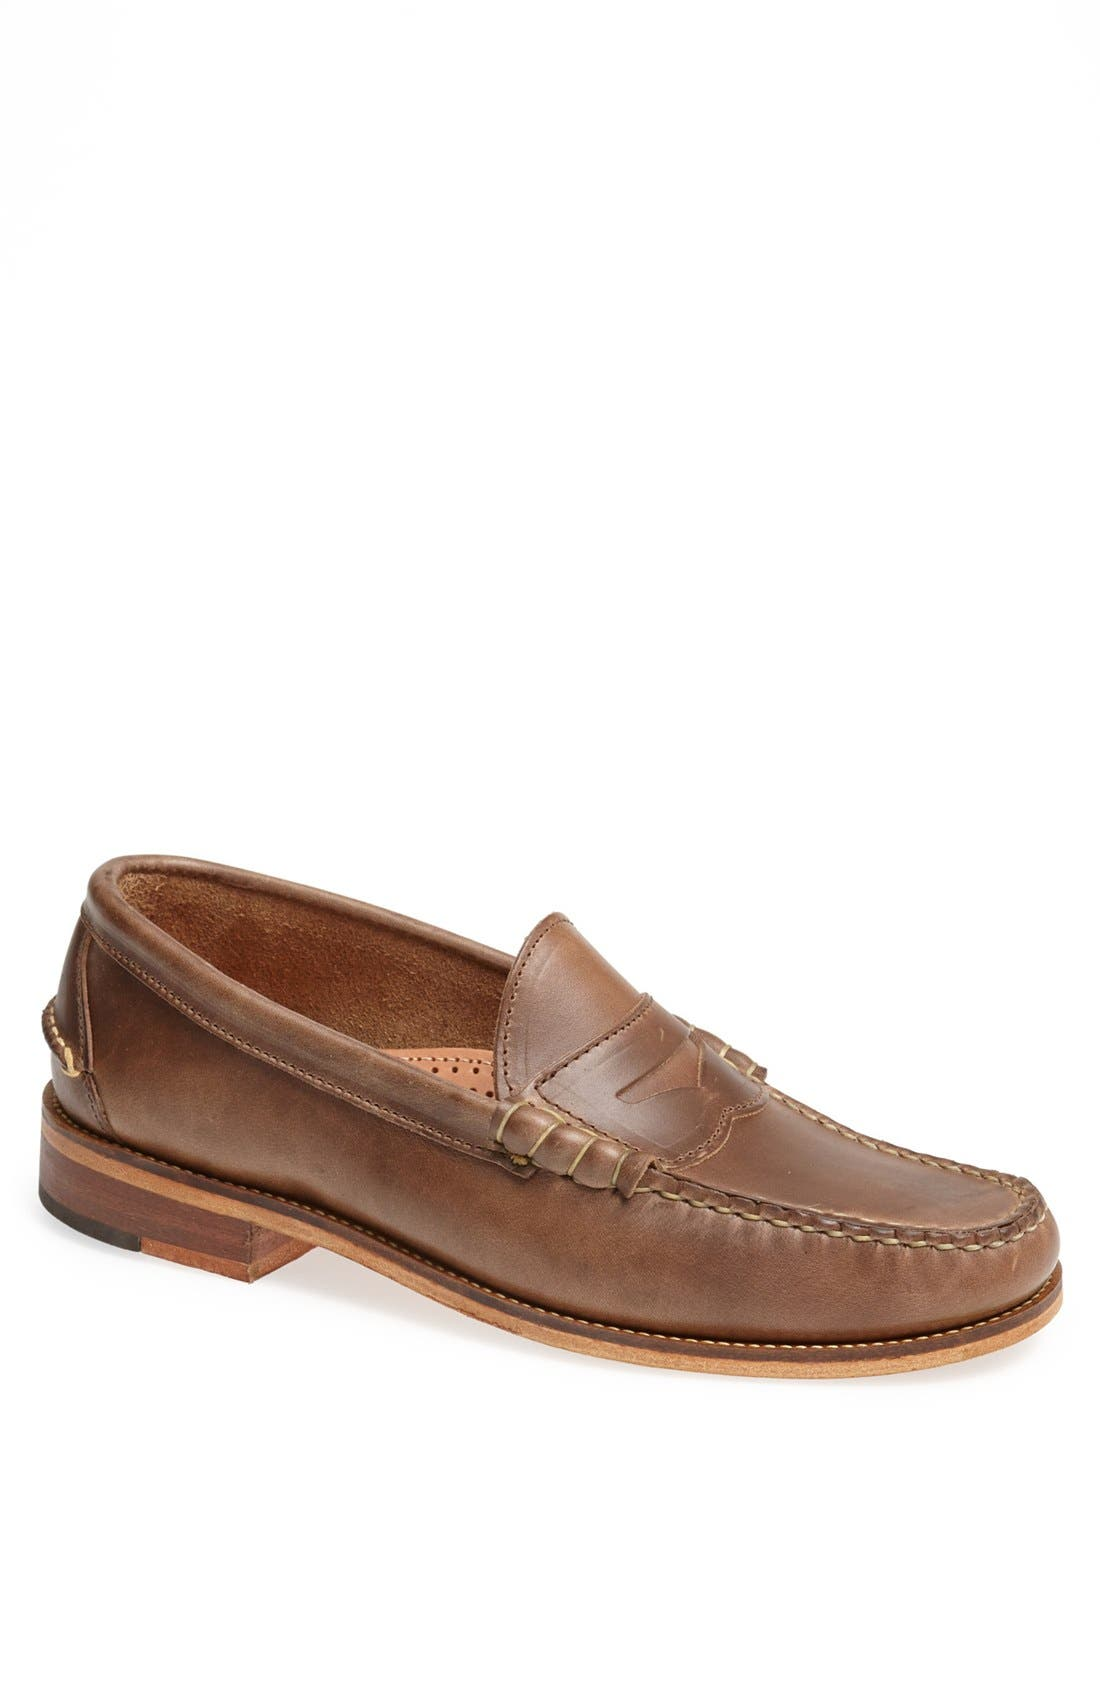 Beefroll Penny Loafer,                             Main thumbnail 1, color,                             NATURAL BROWN